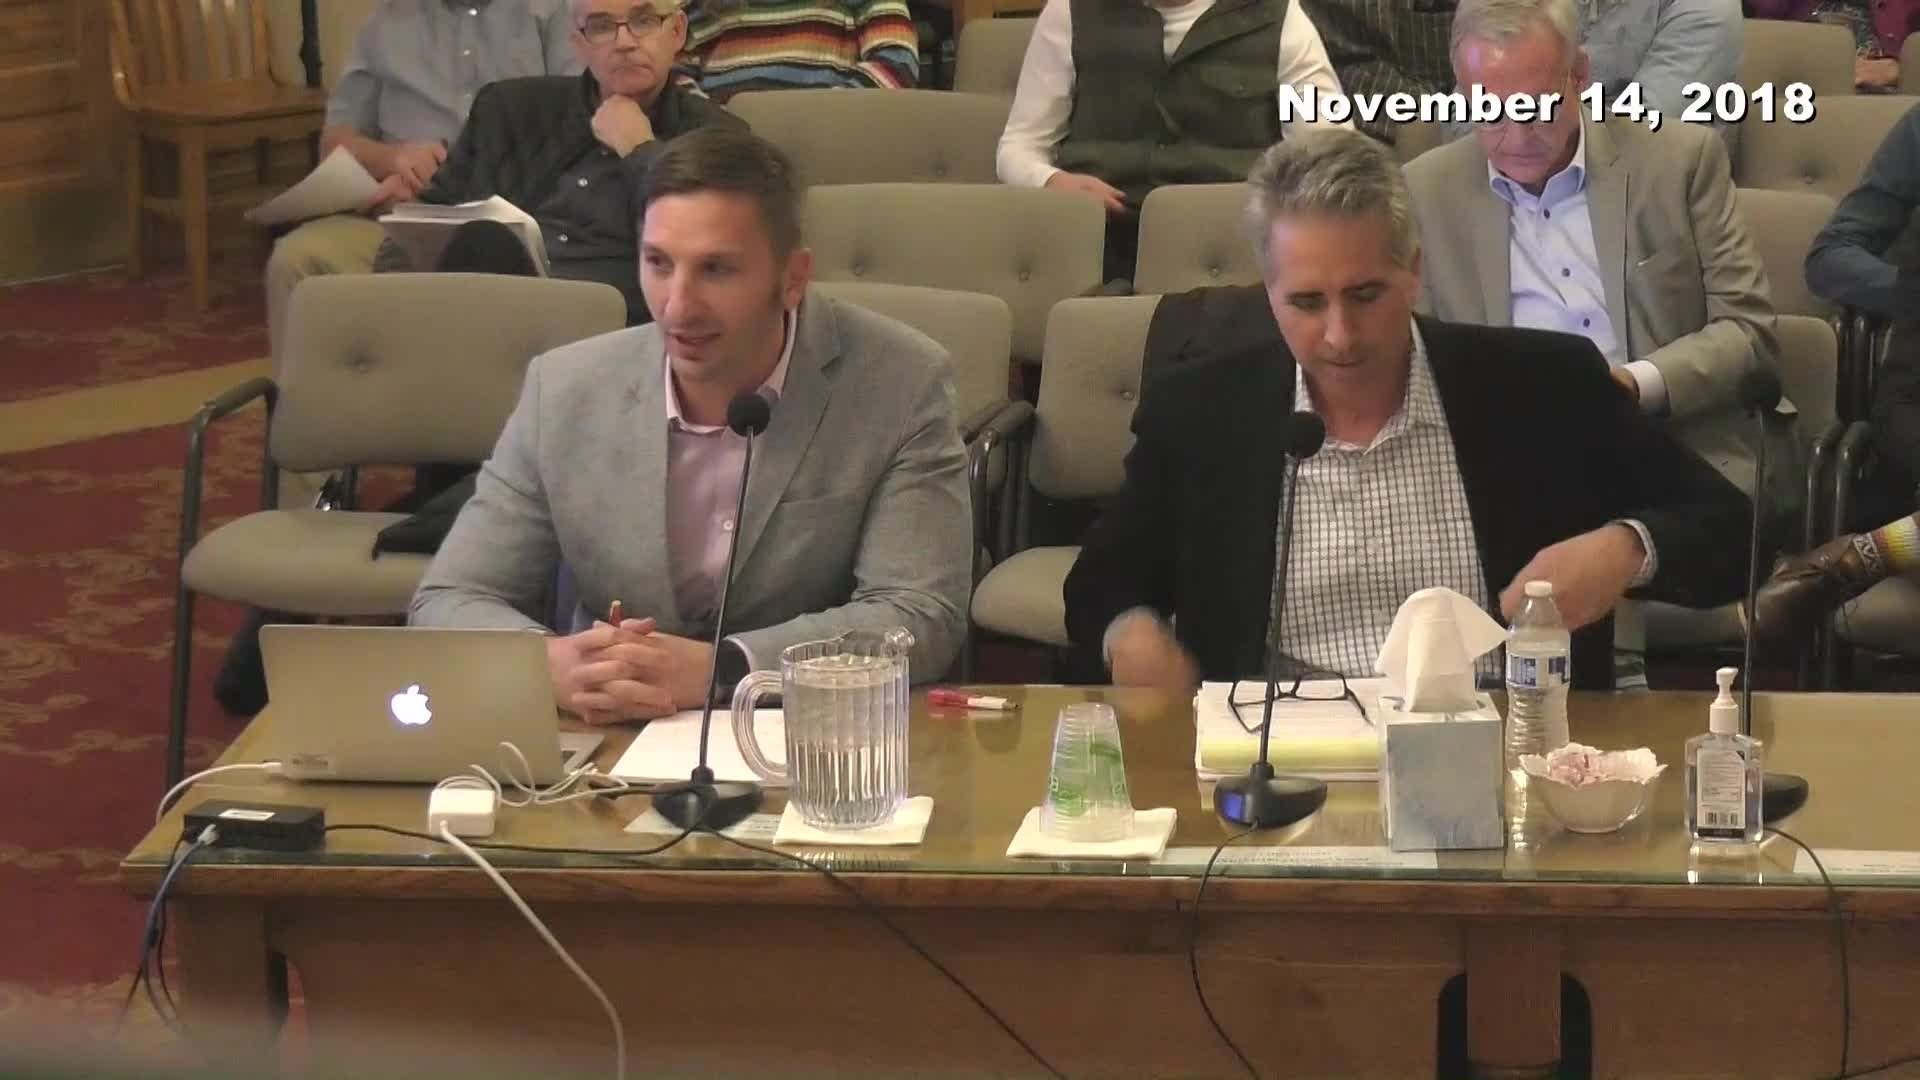 Planning Commission Meeting - 11/14/2018